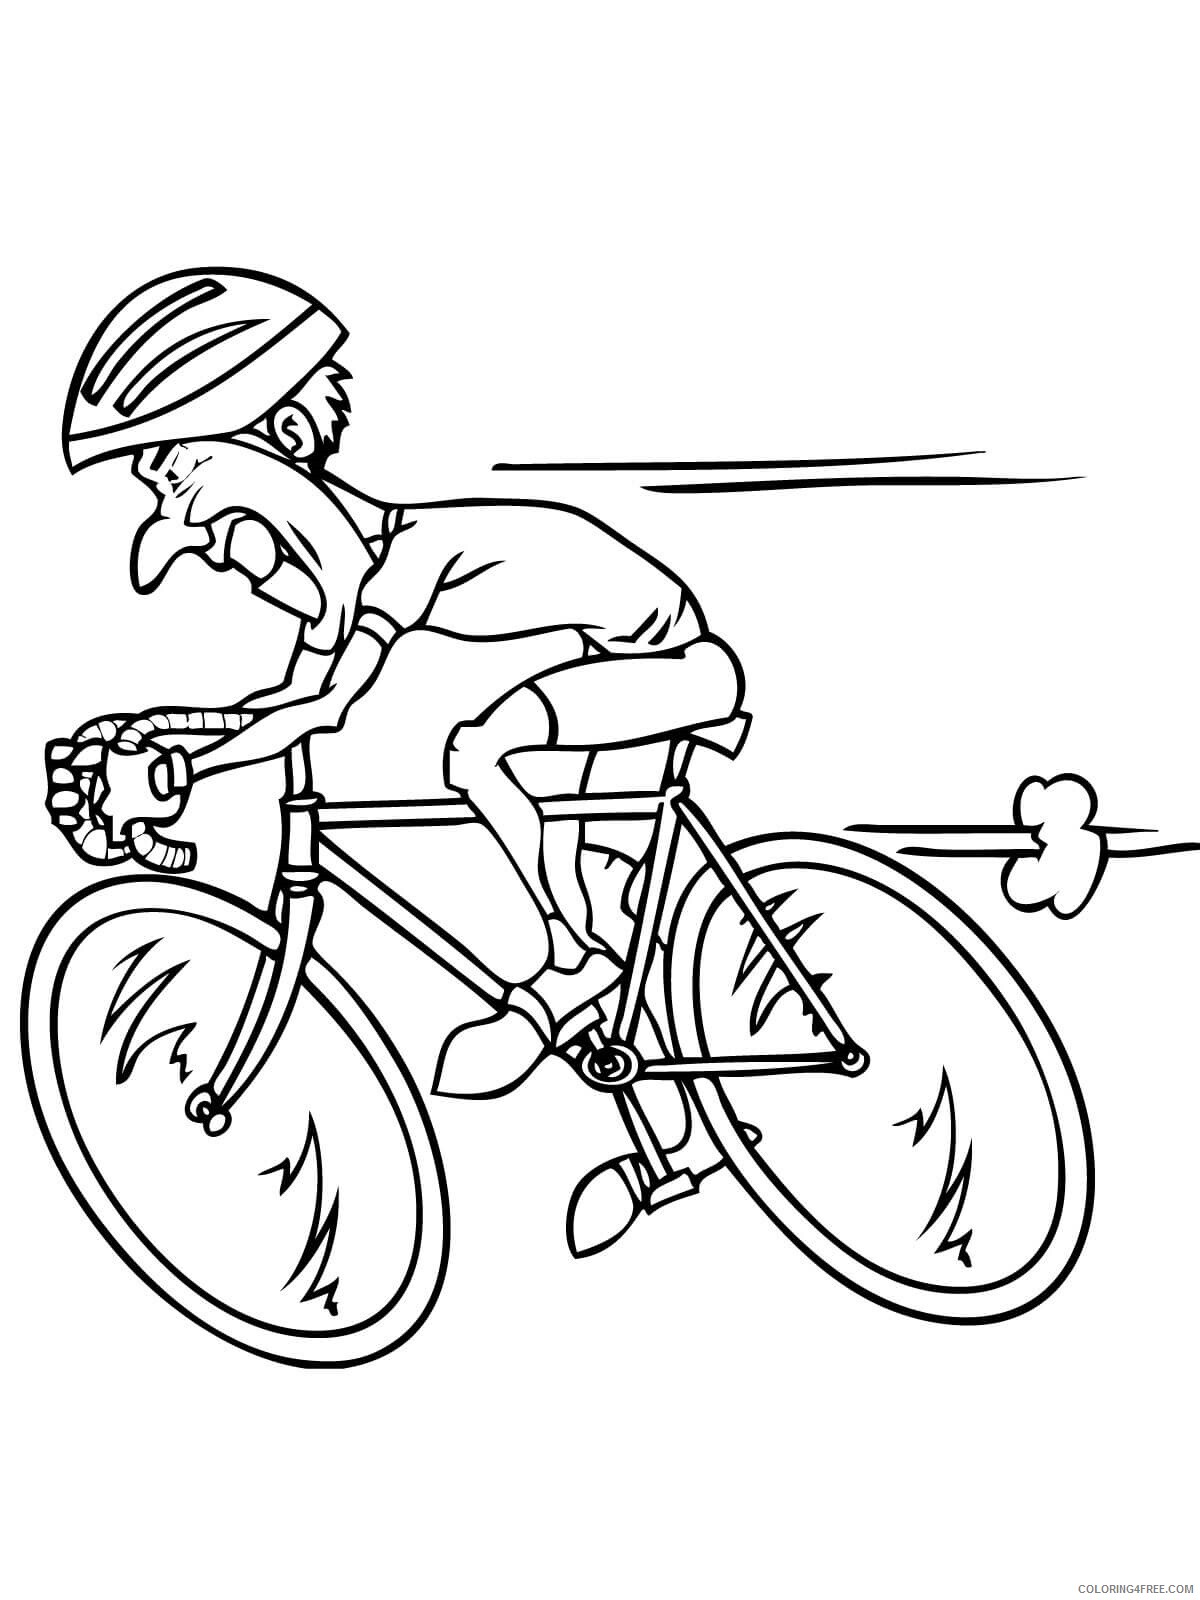 Bicycle Coloring Pages for Kids riding racing bicycle Printable 2021 046 Coloring4free